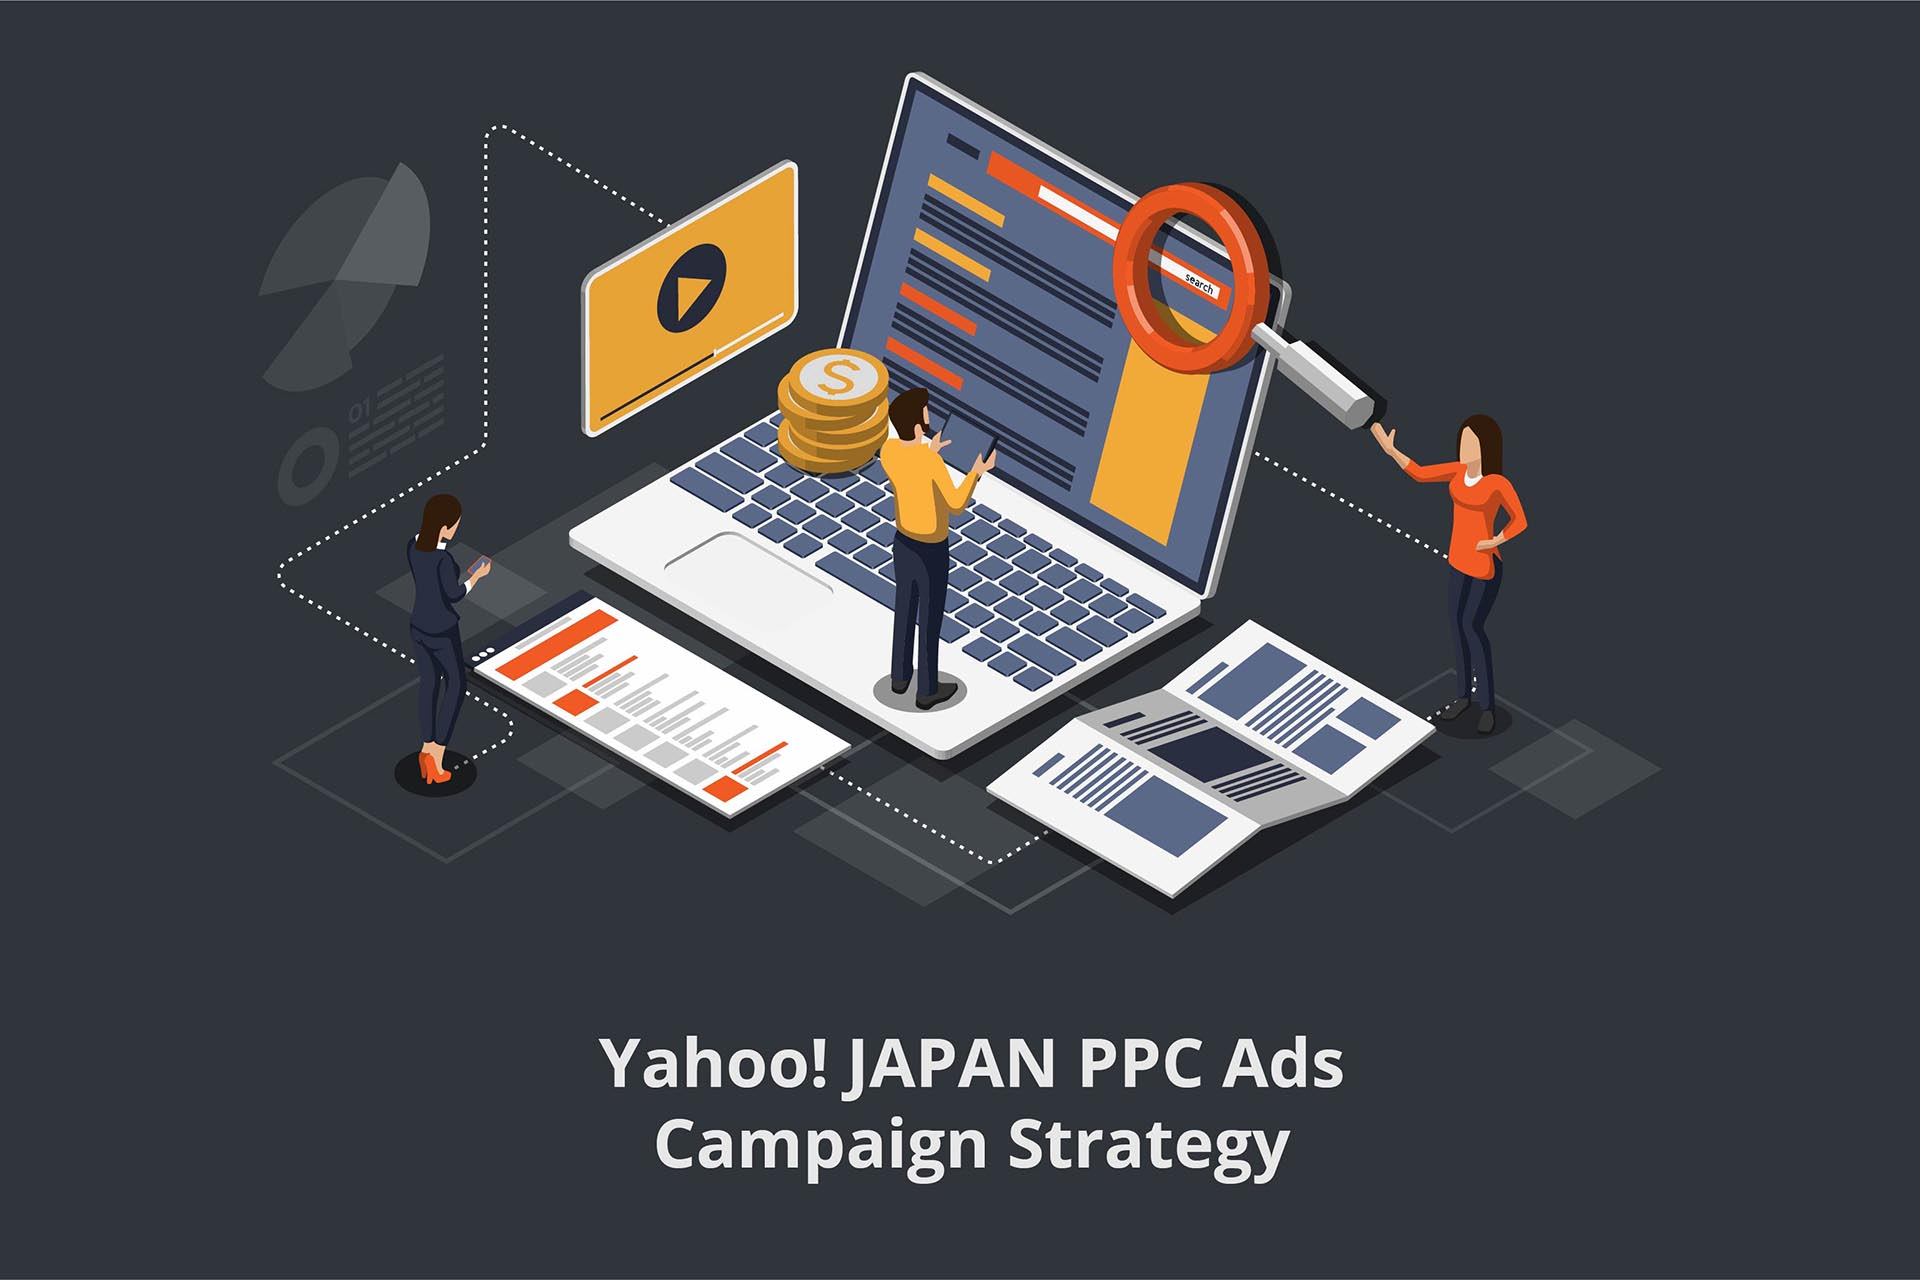 Yahoo! JAPAN PPC Ads Campaign Strategy - Digital Marketing For Asia